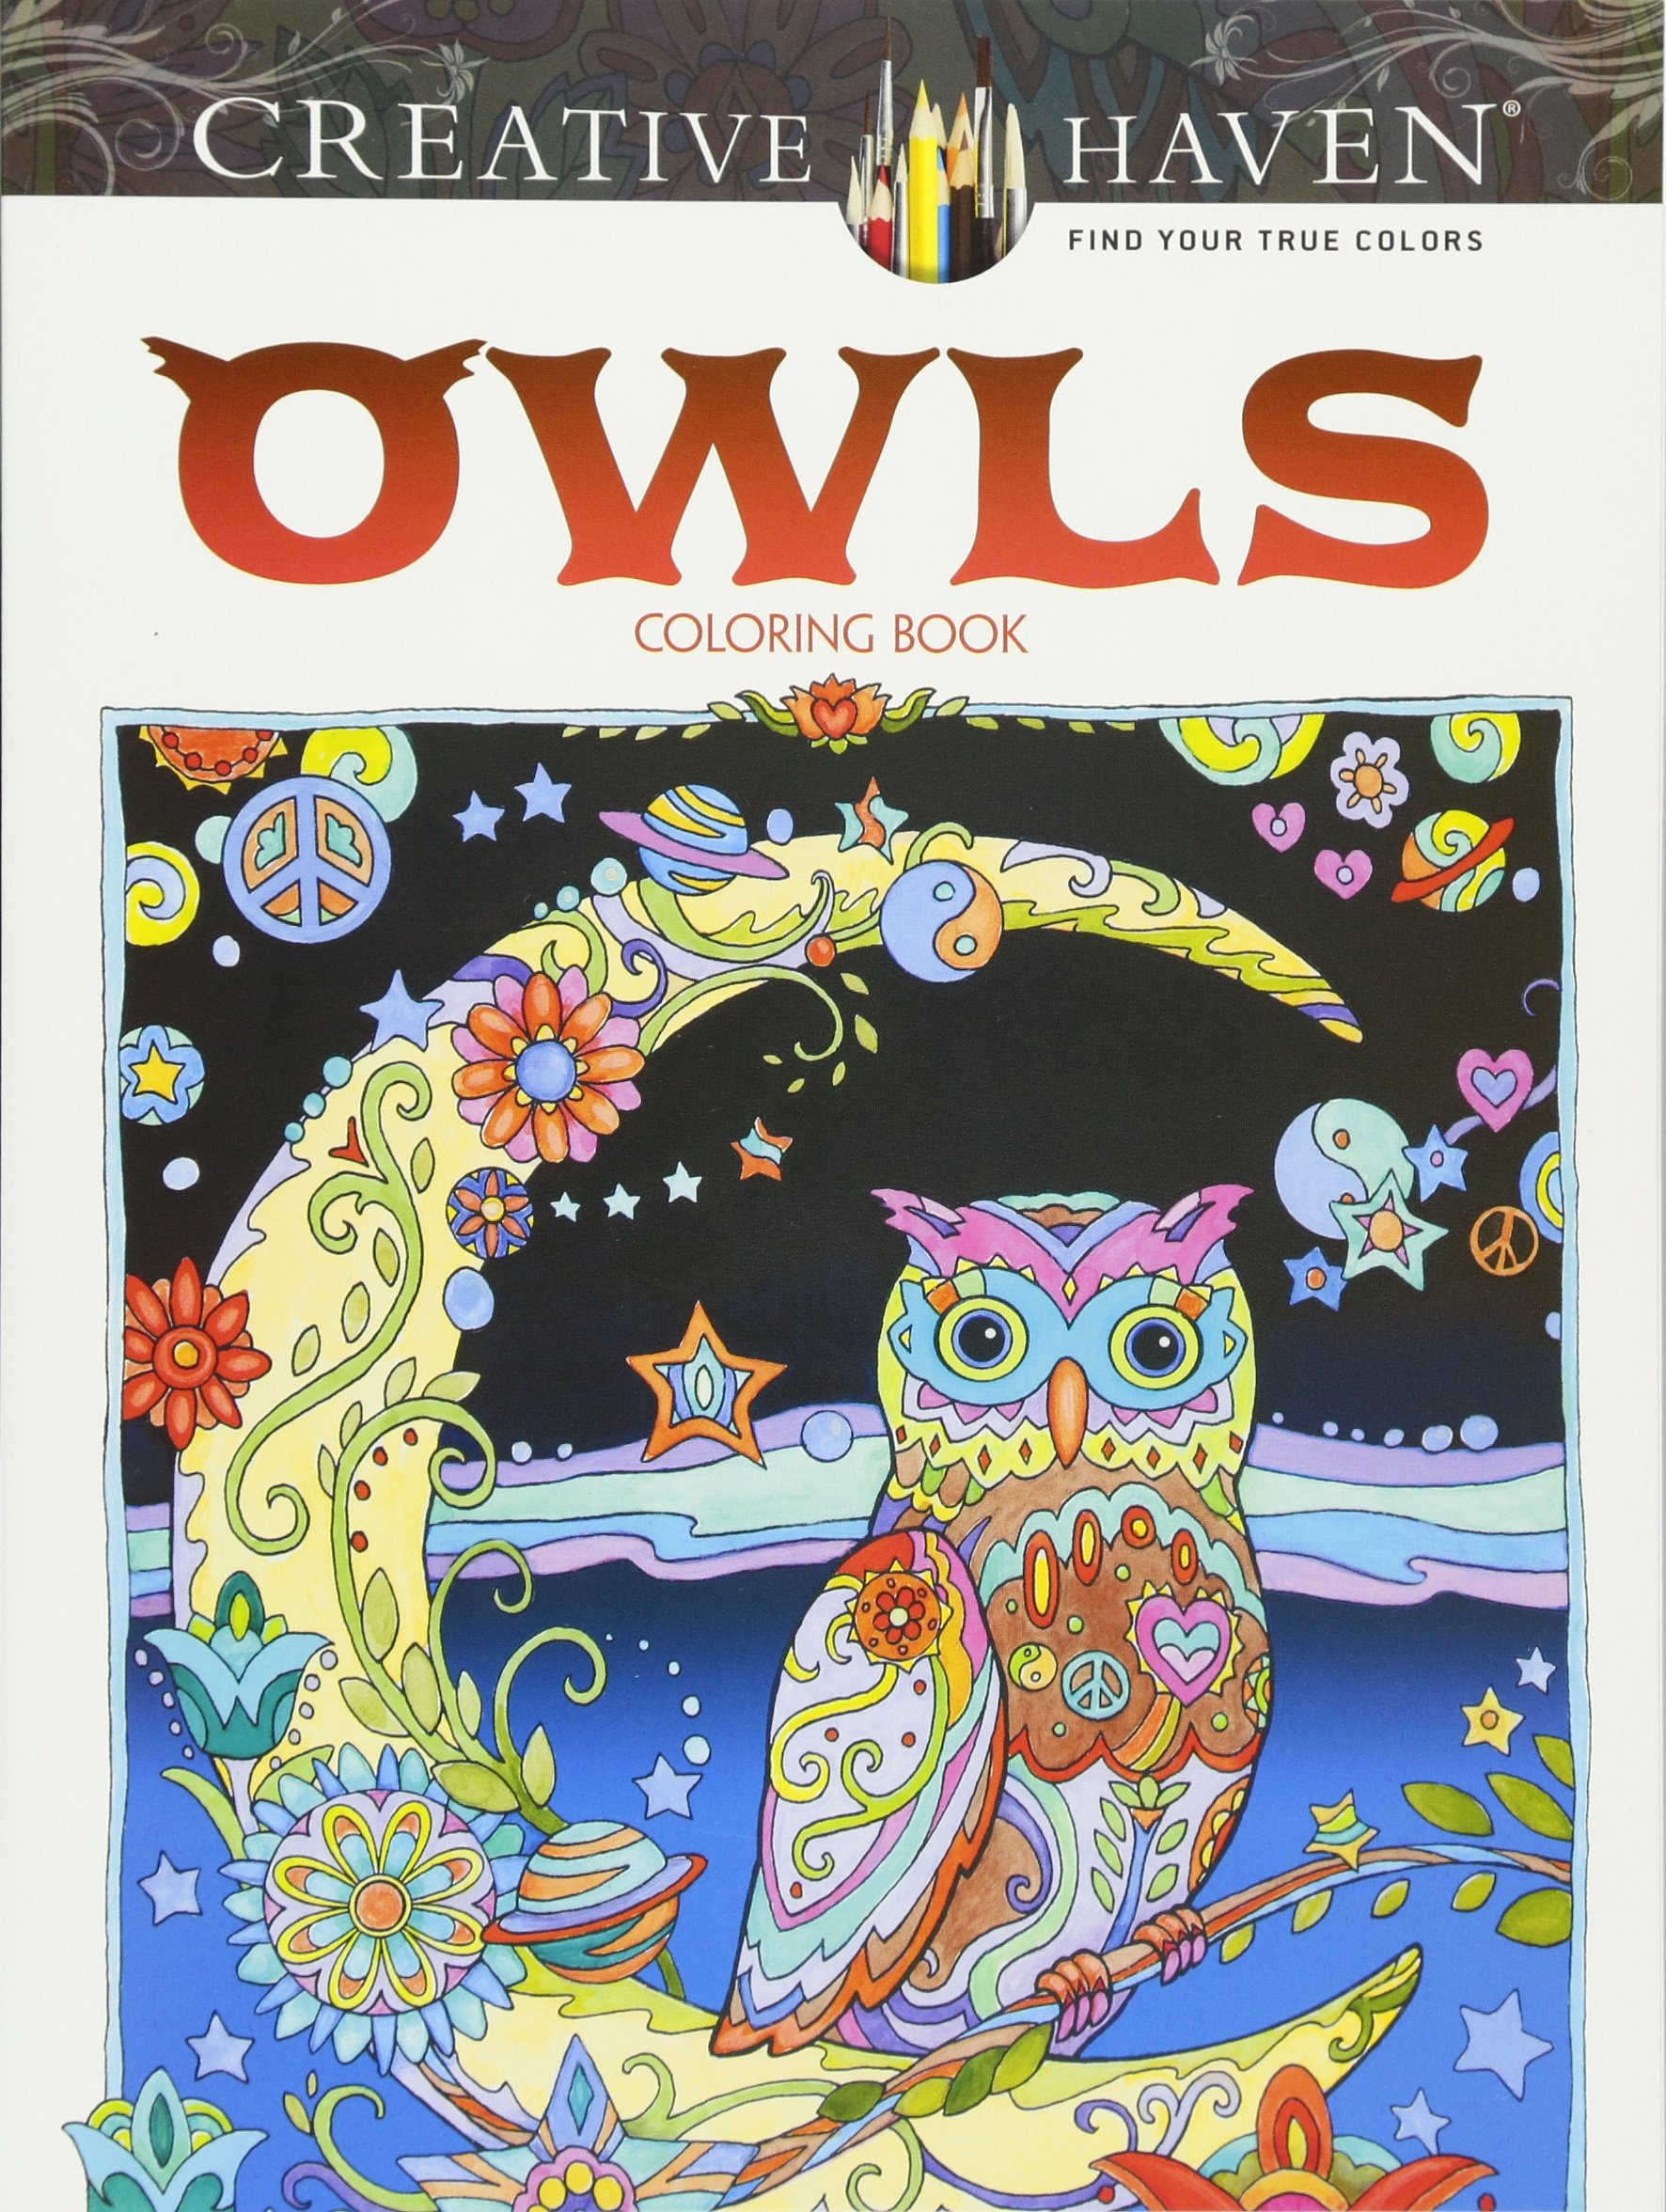 A fun magic coloring book amazon - Amazon Com Creative Haven Owls Coloring Book Adult Coloring 9780486796642 Marjorie Sarnat Books